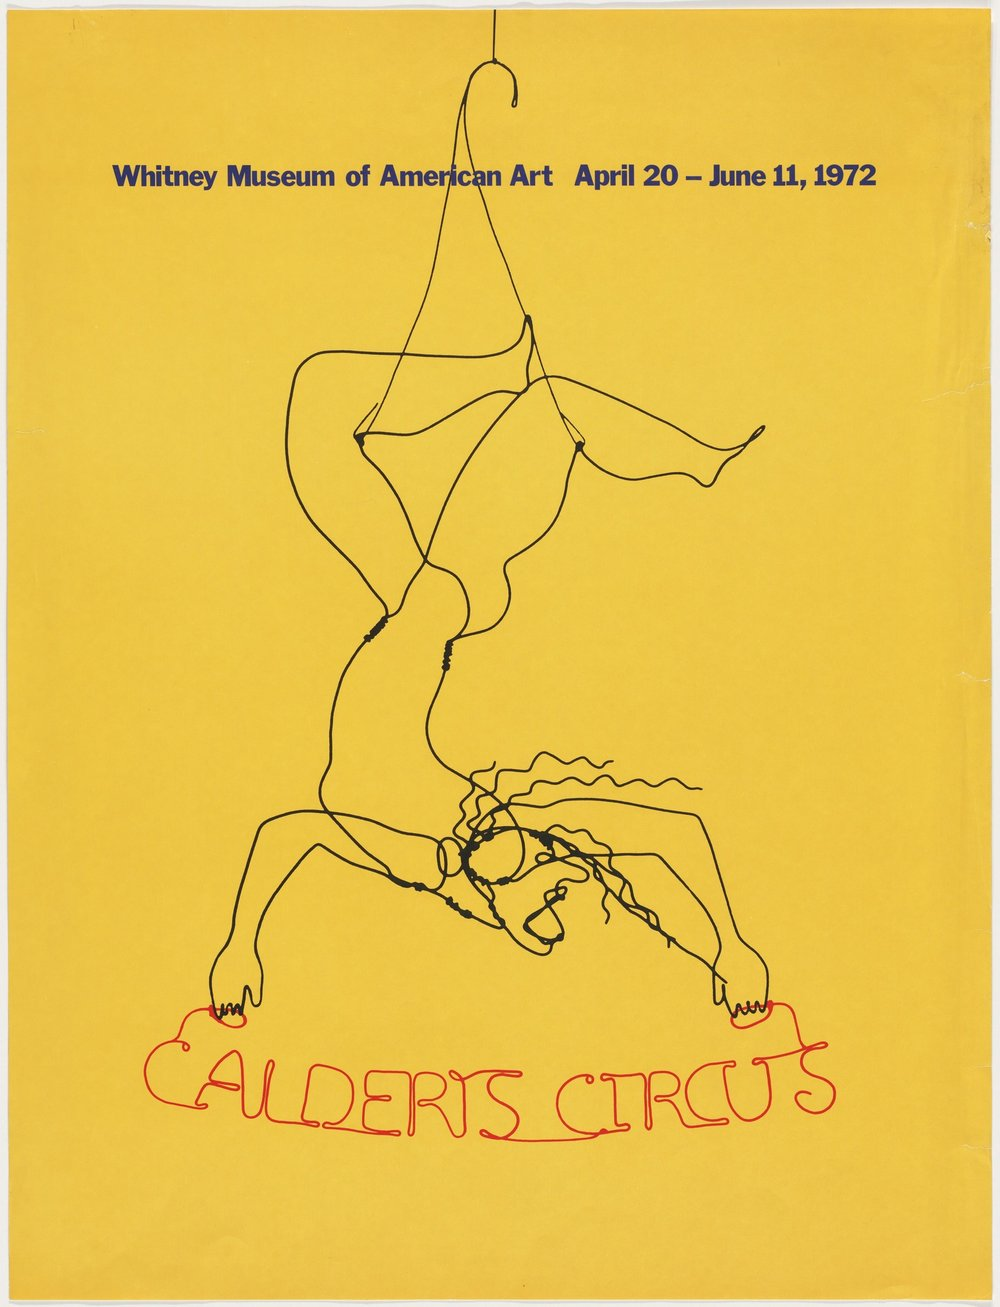 Linda Tiller:Calder is one of my favorites. I love his Circus at the Whitney and his giant mobiles at the East Wing of the National Gallery in Washington D.C. - A poster for Alexander Calder's Circus at the Whitney Museum of American Art.